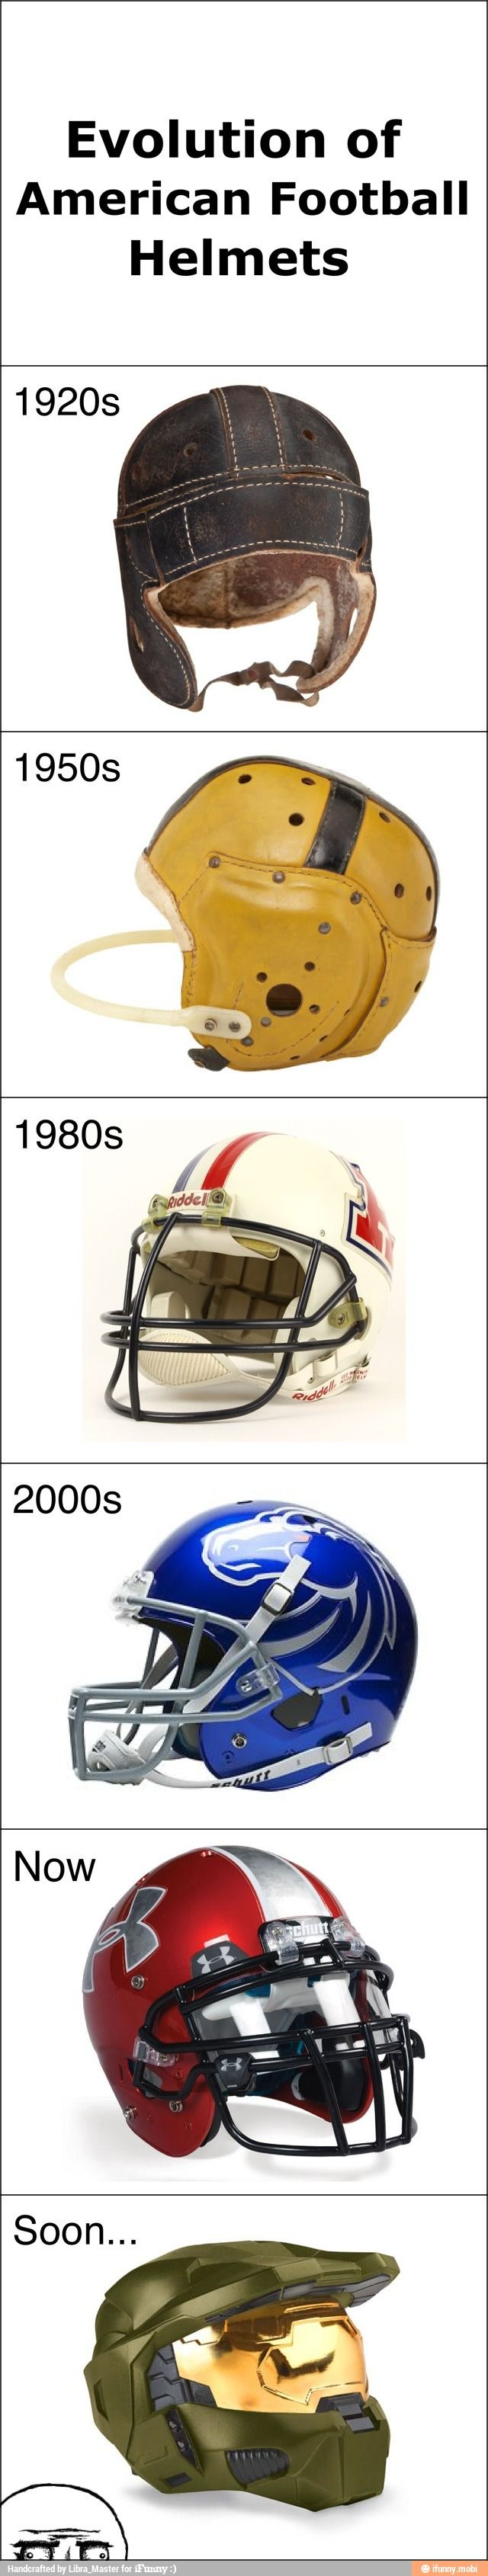 evolution on football helmet St louis/los angeles/cleveland rams: 1946-1949: the first nfl football helmet with a logo or design created by la rams halfback fred gerhke in 1946, who was trained in art the original leather helmets were hand-painted by gerhke, who played for the rams in cleveland in 1940 & 1945, and in la from 1946-1949.